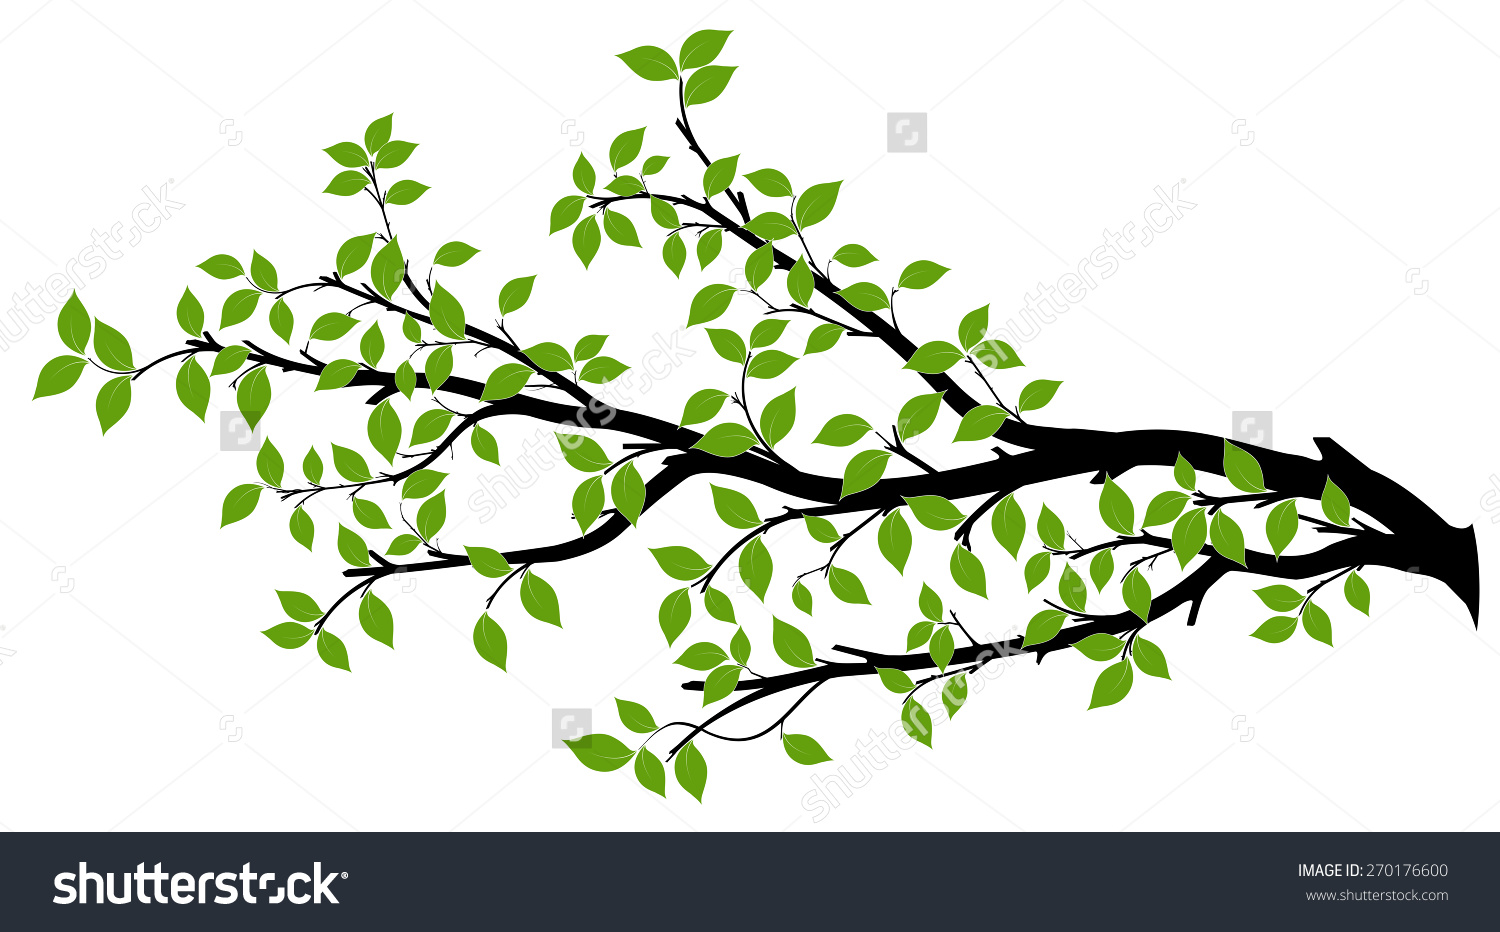 Tree Branch Green Leaves Over White Stock Vector 270176600.